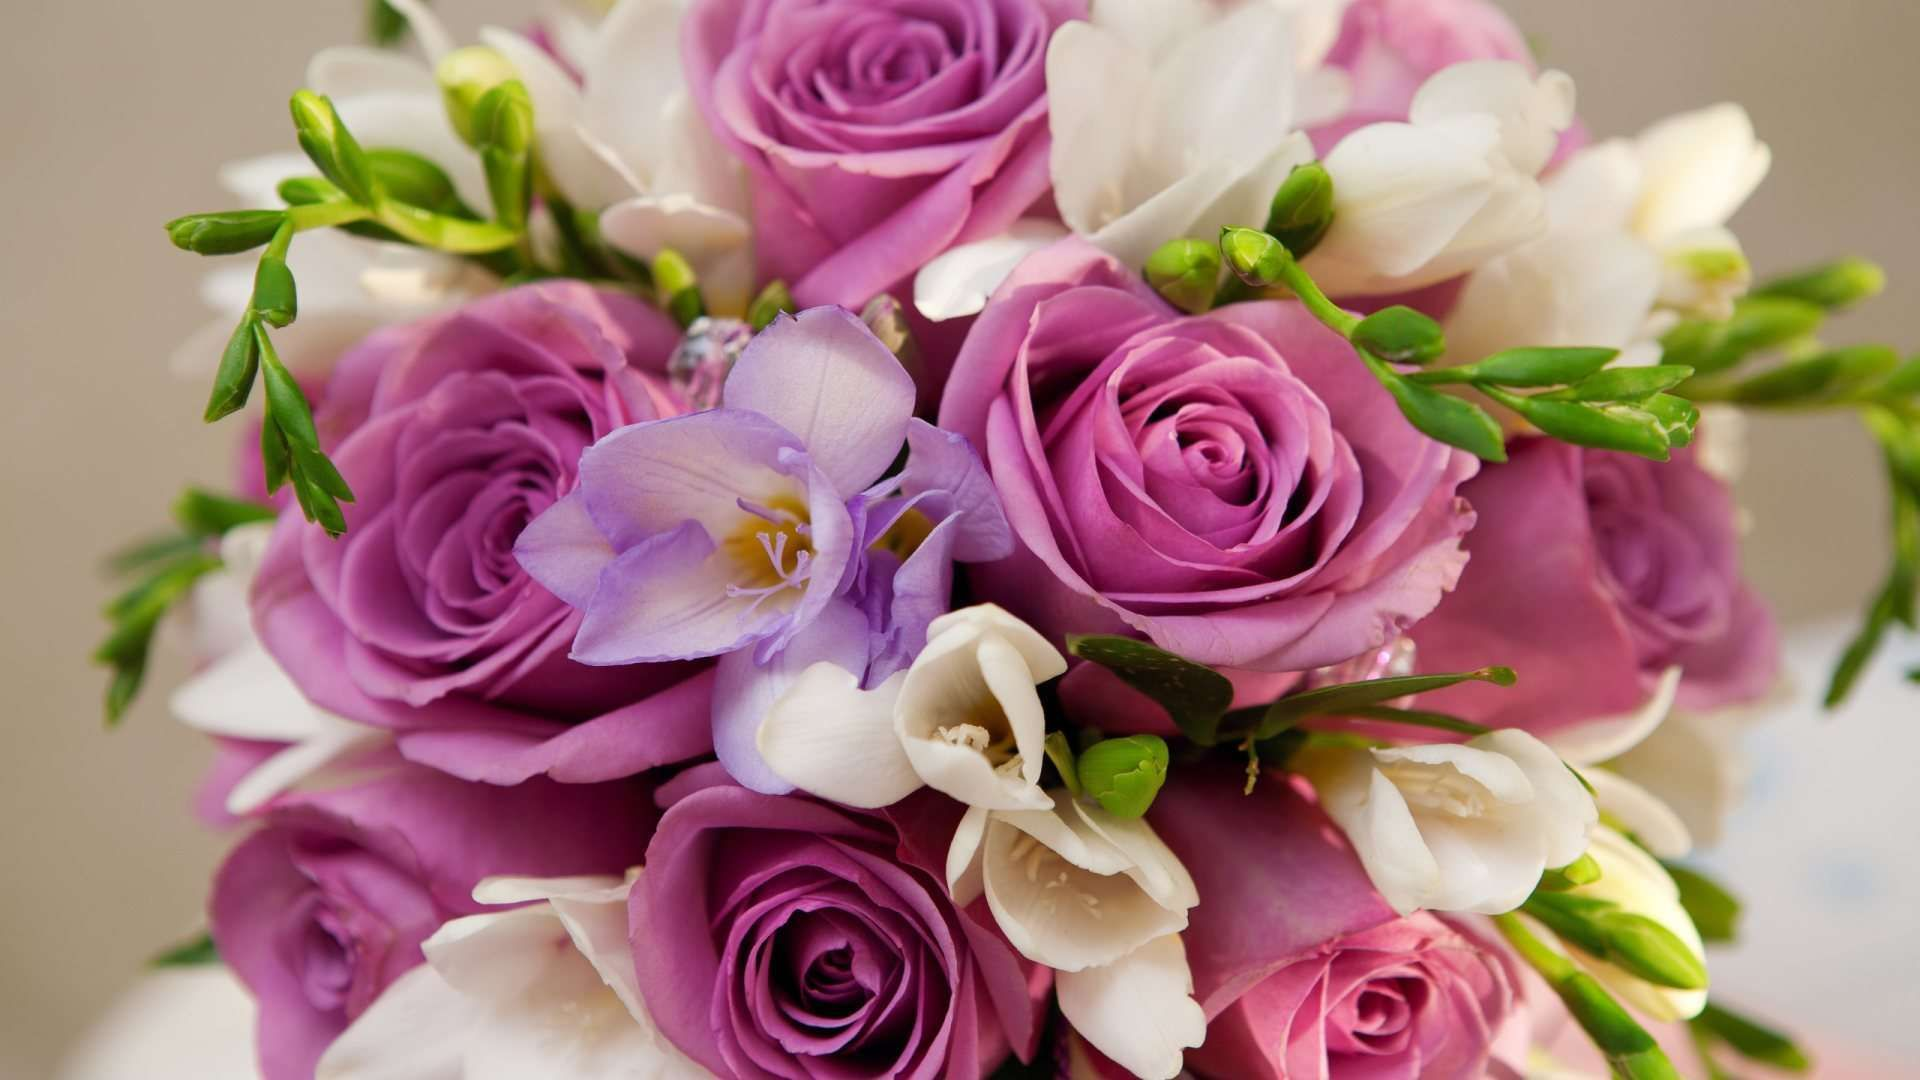 Beautiful Purple And White Flowers Bouquet 1080p Hd Wallpaper